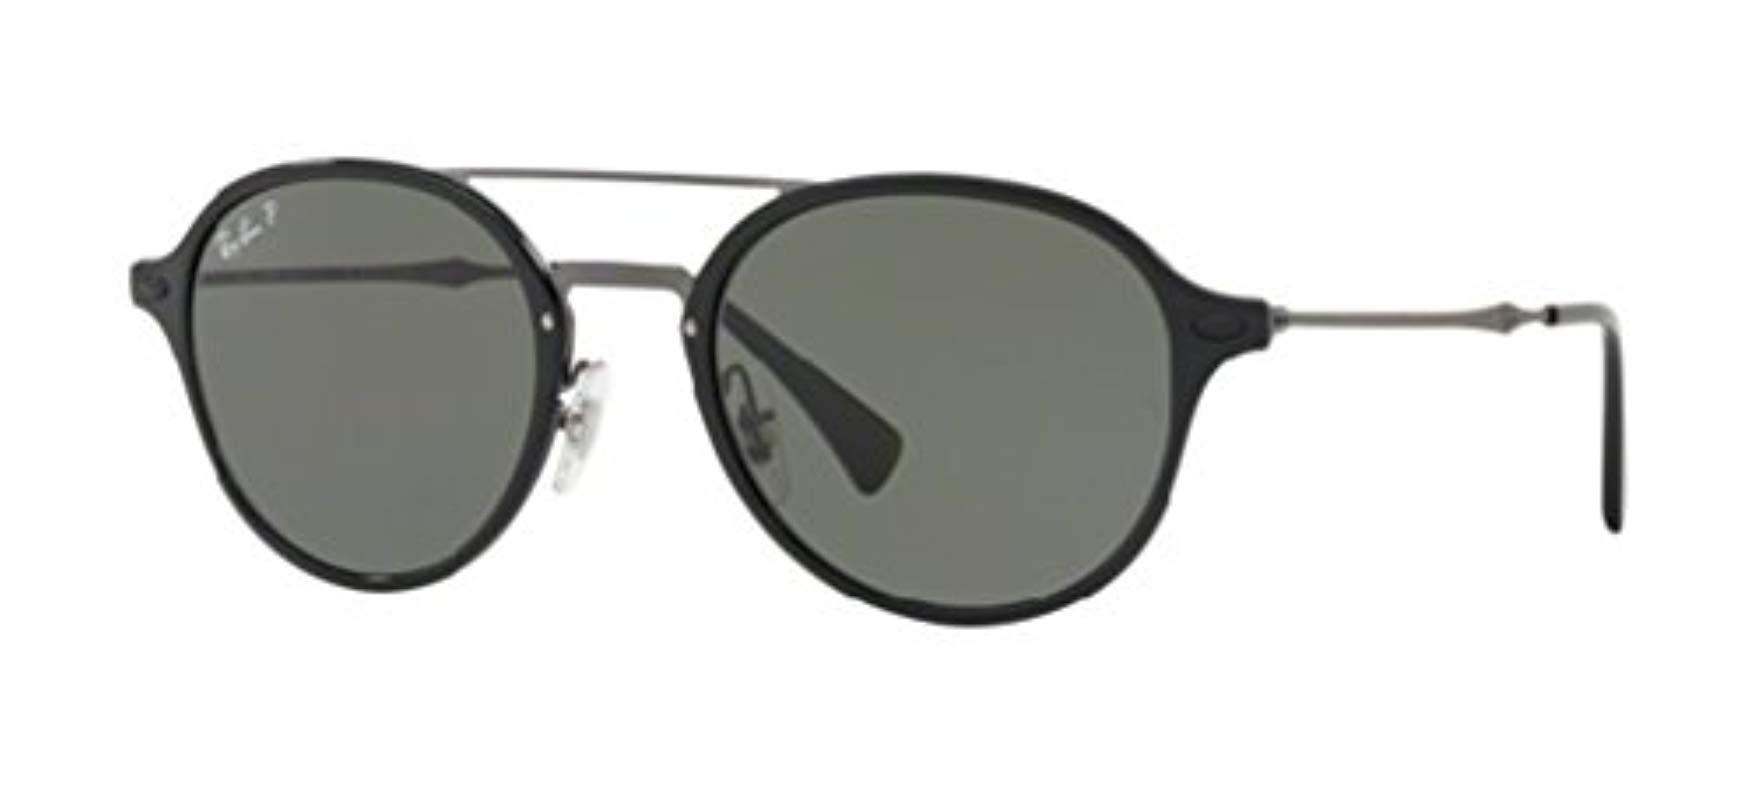 6c4881144a Lyst - Ray-Ban Rb4287 Sunglasses in Black for Men